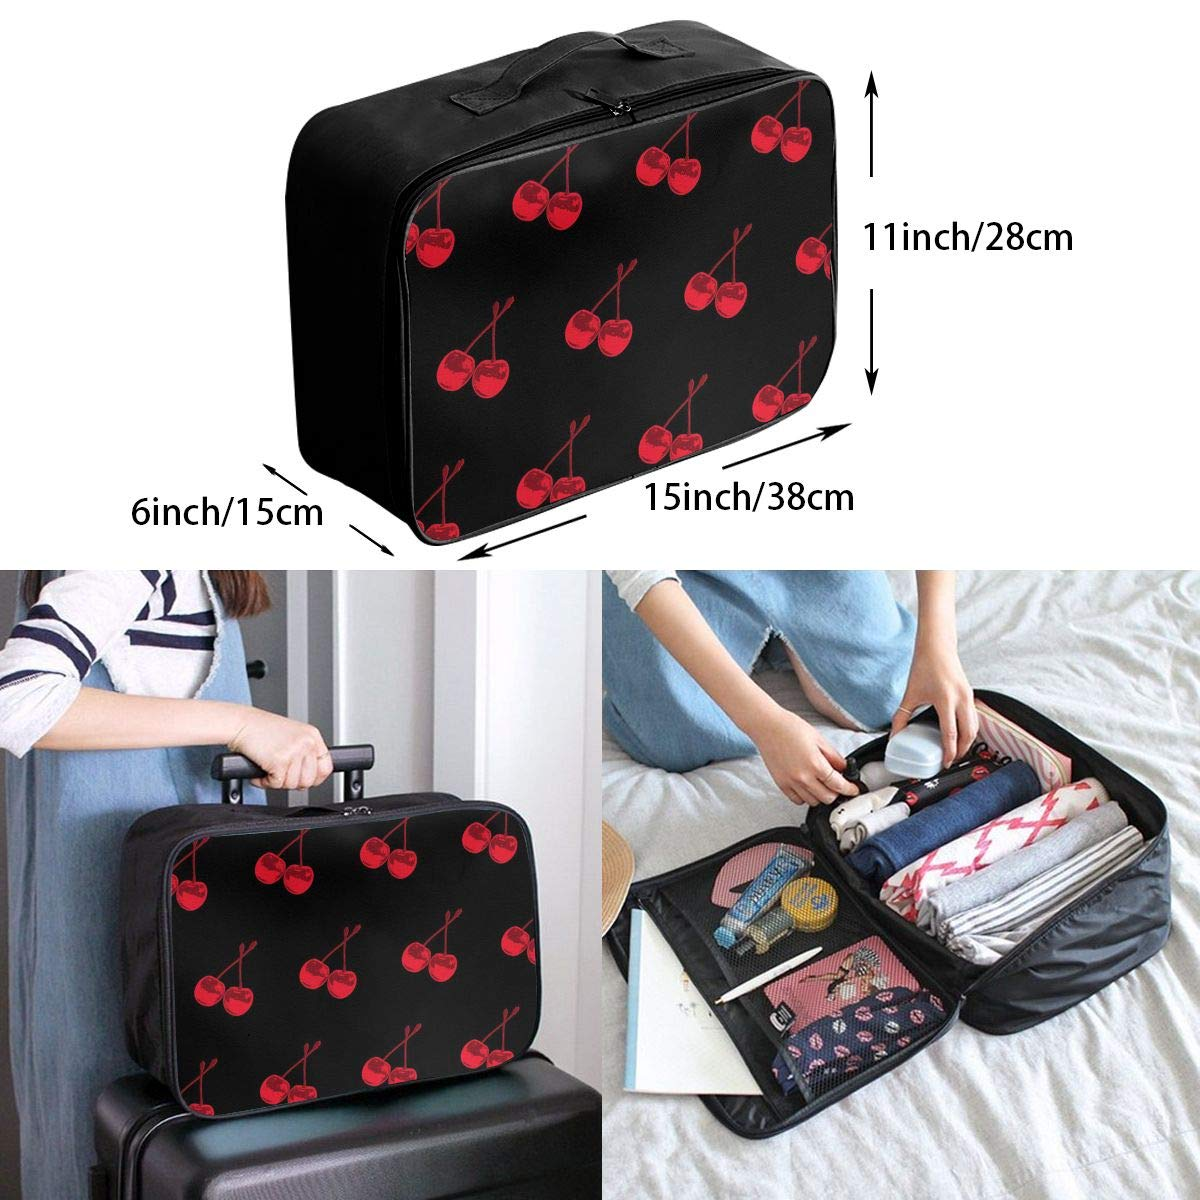 Travel Luggage Duffle Bag Lightweight Portable Handbag Cherry Pattern Large Capacity Waterproof Foldable Storage Tote